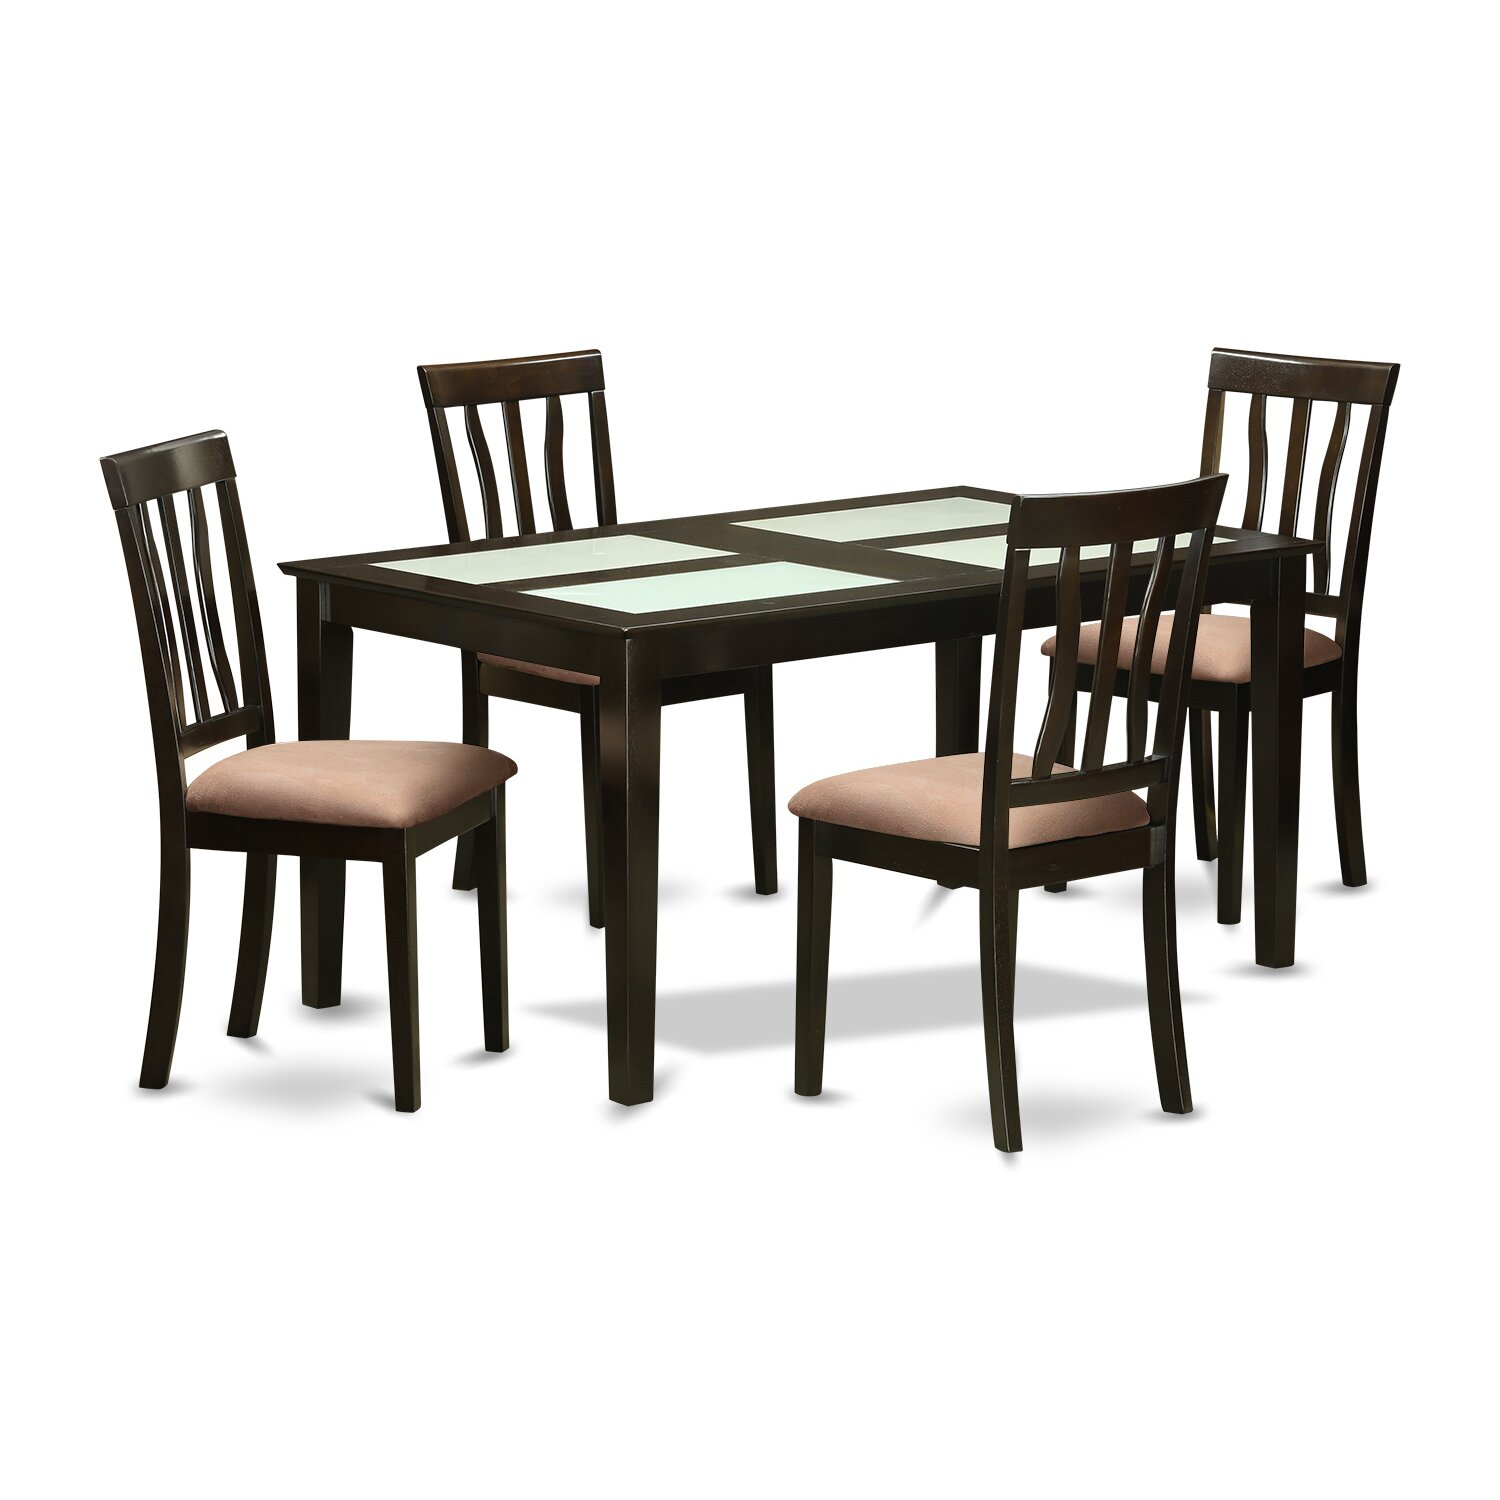 Wooden importers capri 5 piece dining set wayfair for 5 piece dining room set with bench